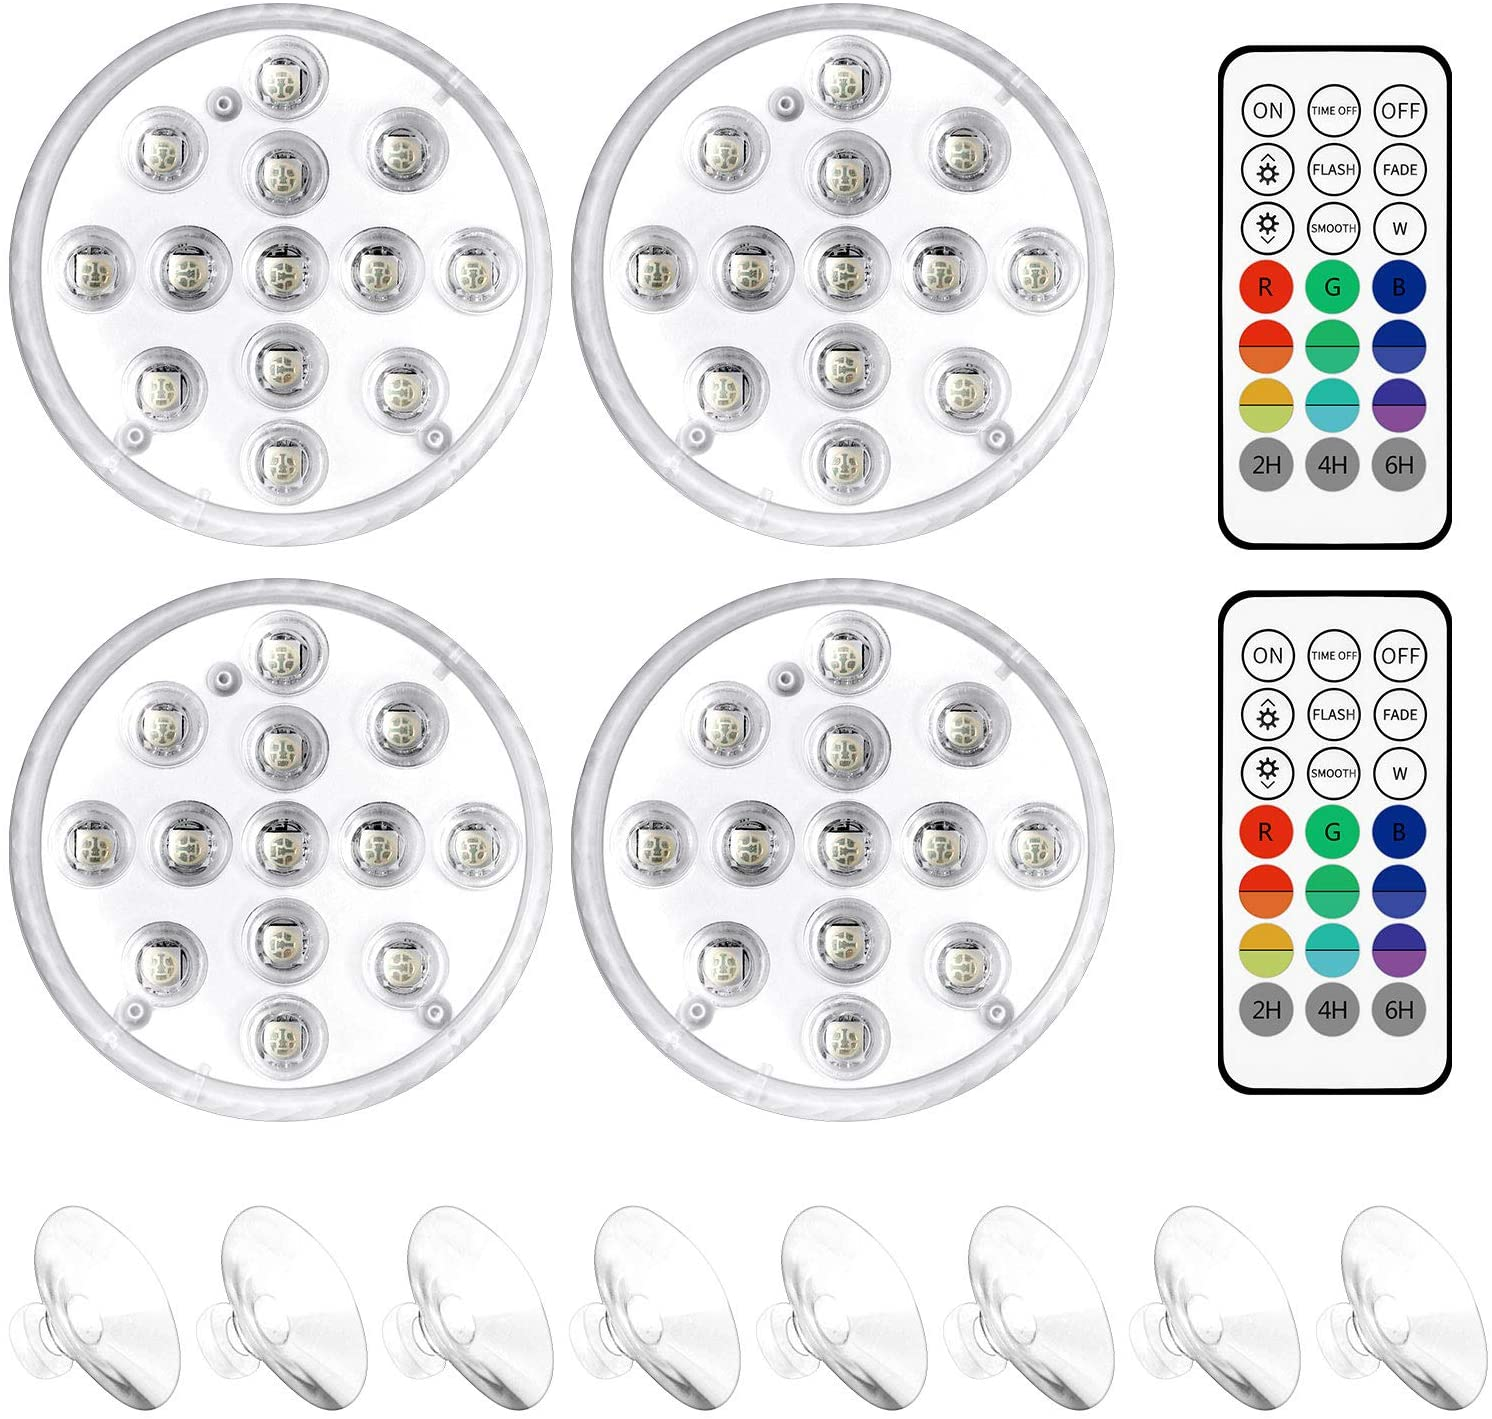 EEEKit Submersible LED Pool Lights with Magnet, Suction Cup, RF Remote, 16 Colors Waterproof Underwater Pond Lights Lamp with 13 LEDs for Aquarium, Pool, Pond, Party